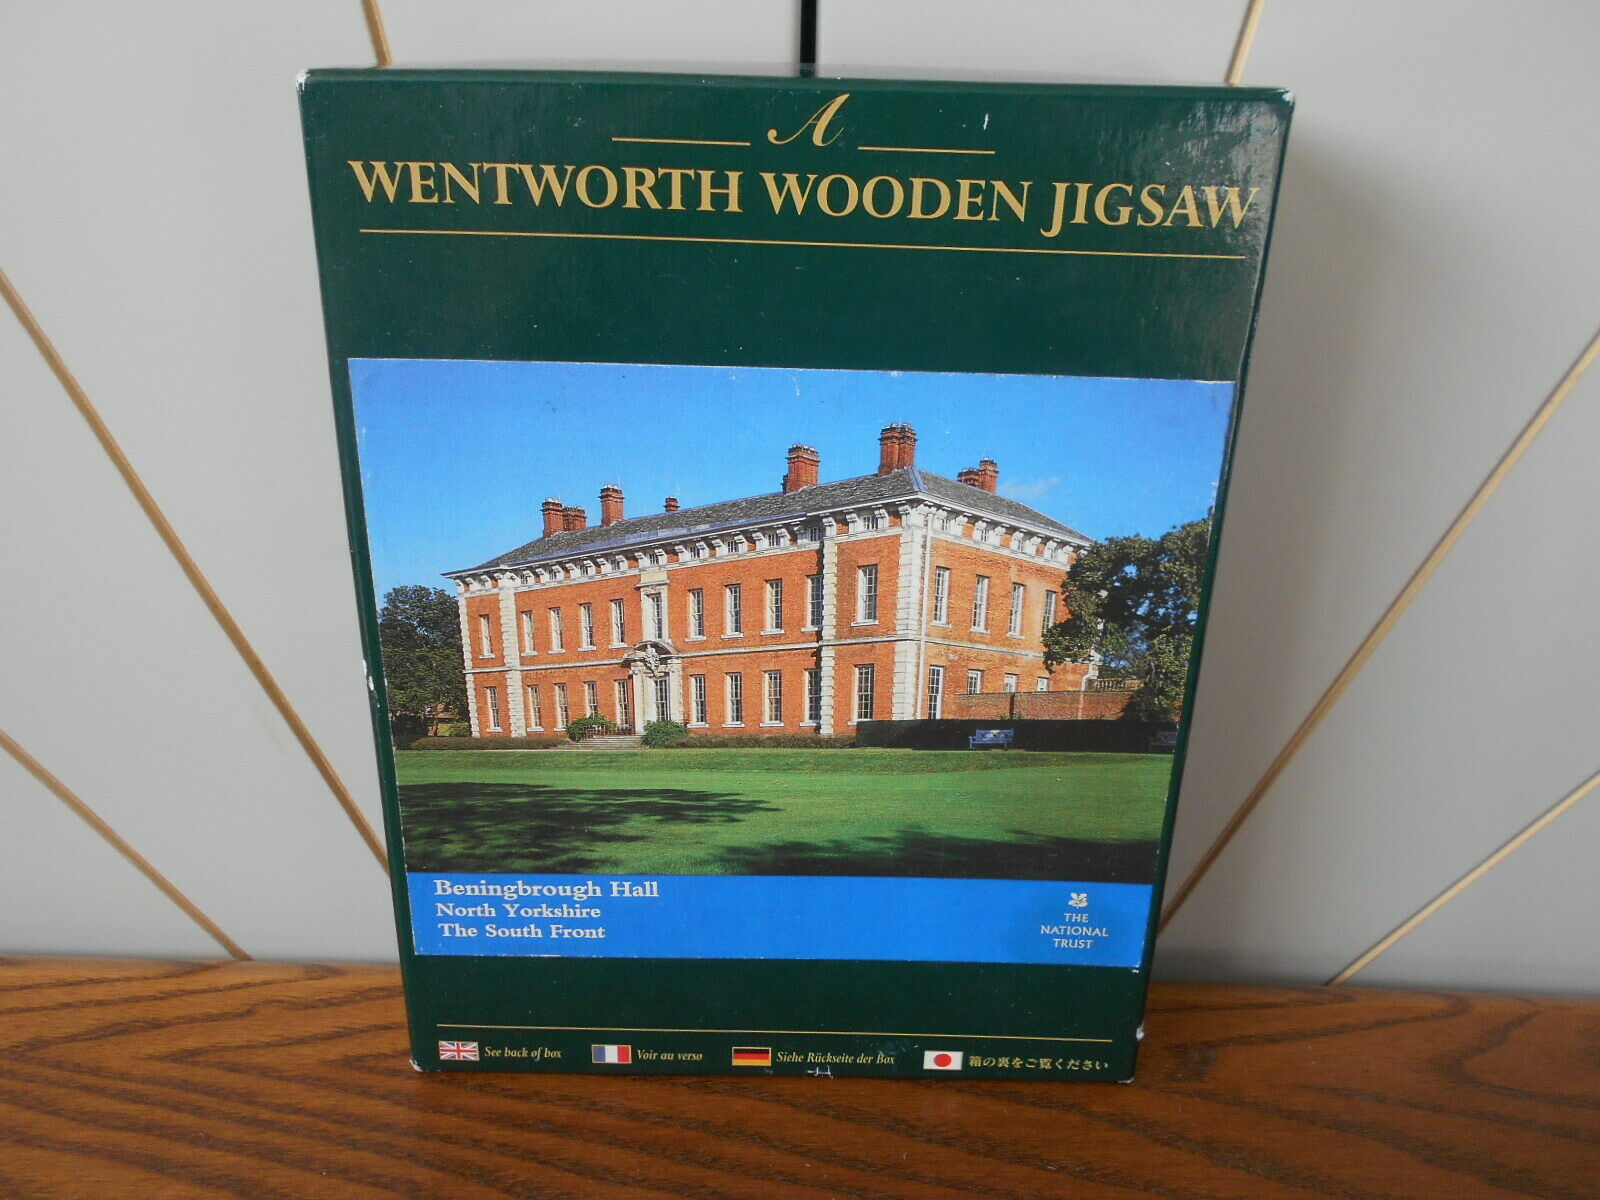 BENINGBROUGH HALL - THE SOUTH FRONT wooden 250 piece jigsaw puzzle WENTWORTH